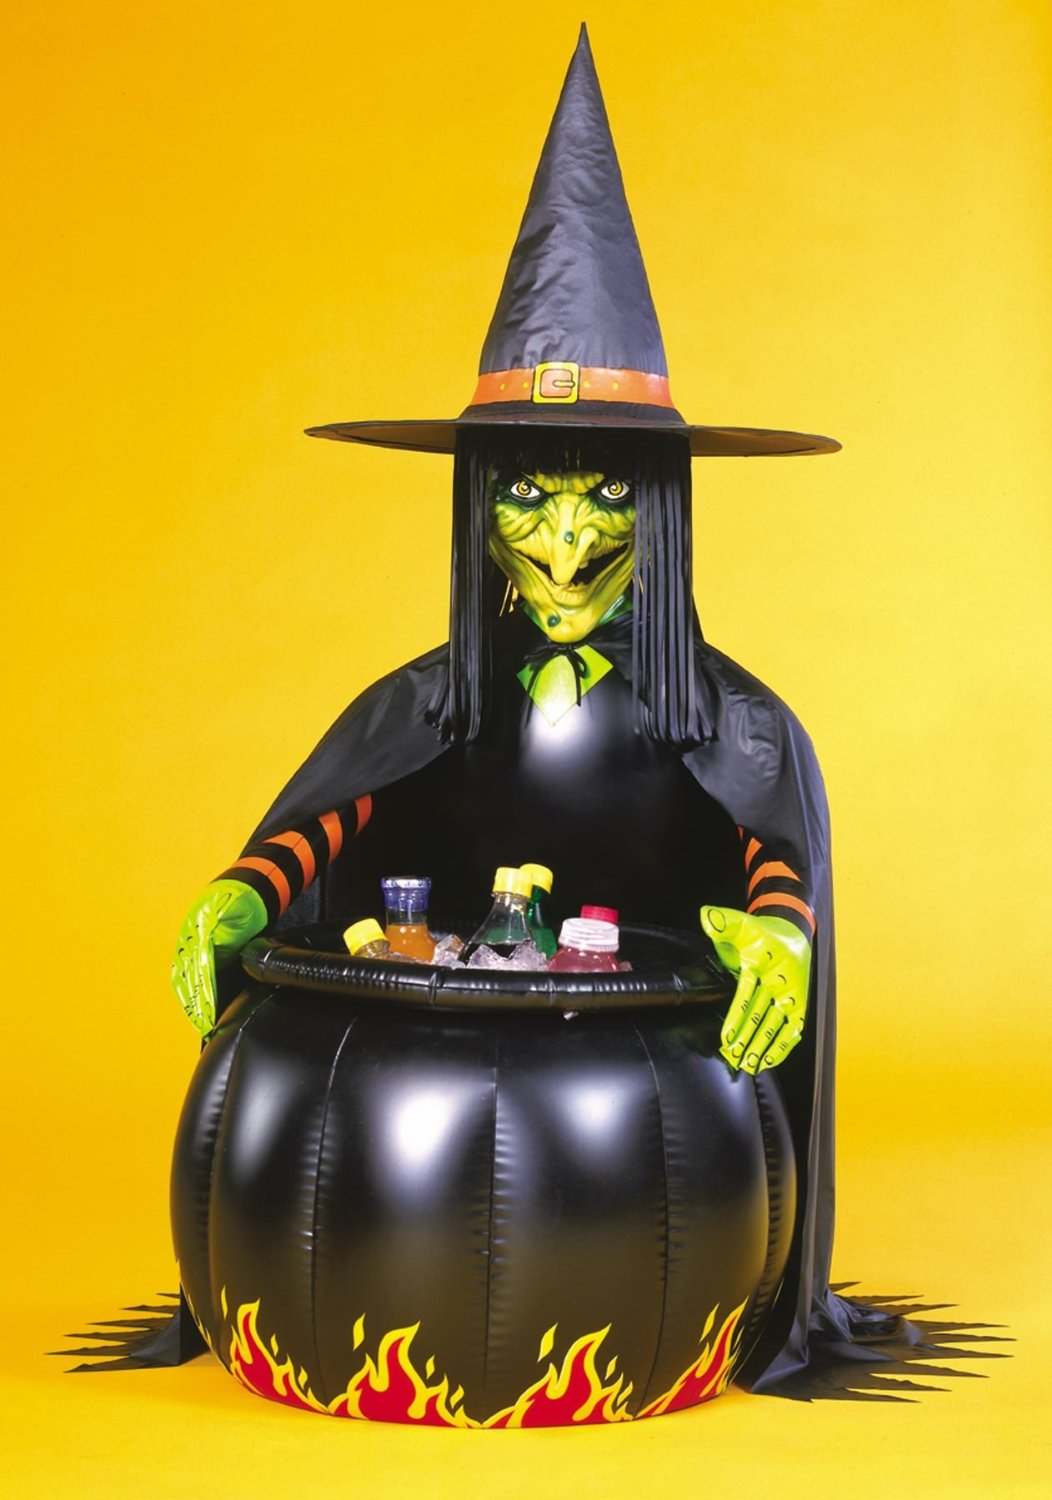 Deluxe Inflatable Witches Cooler Cauldron and Witch